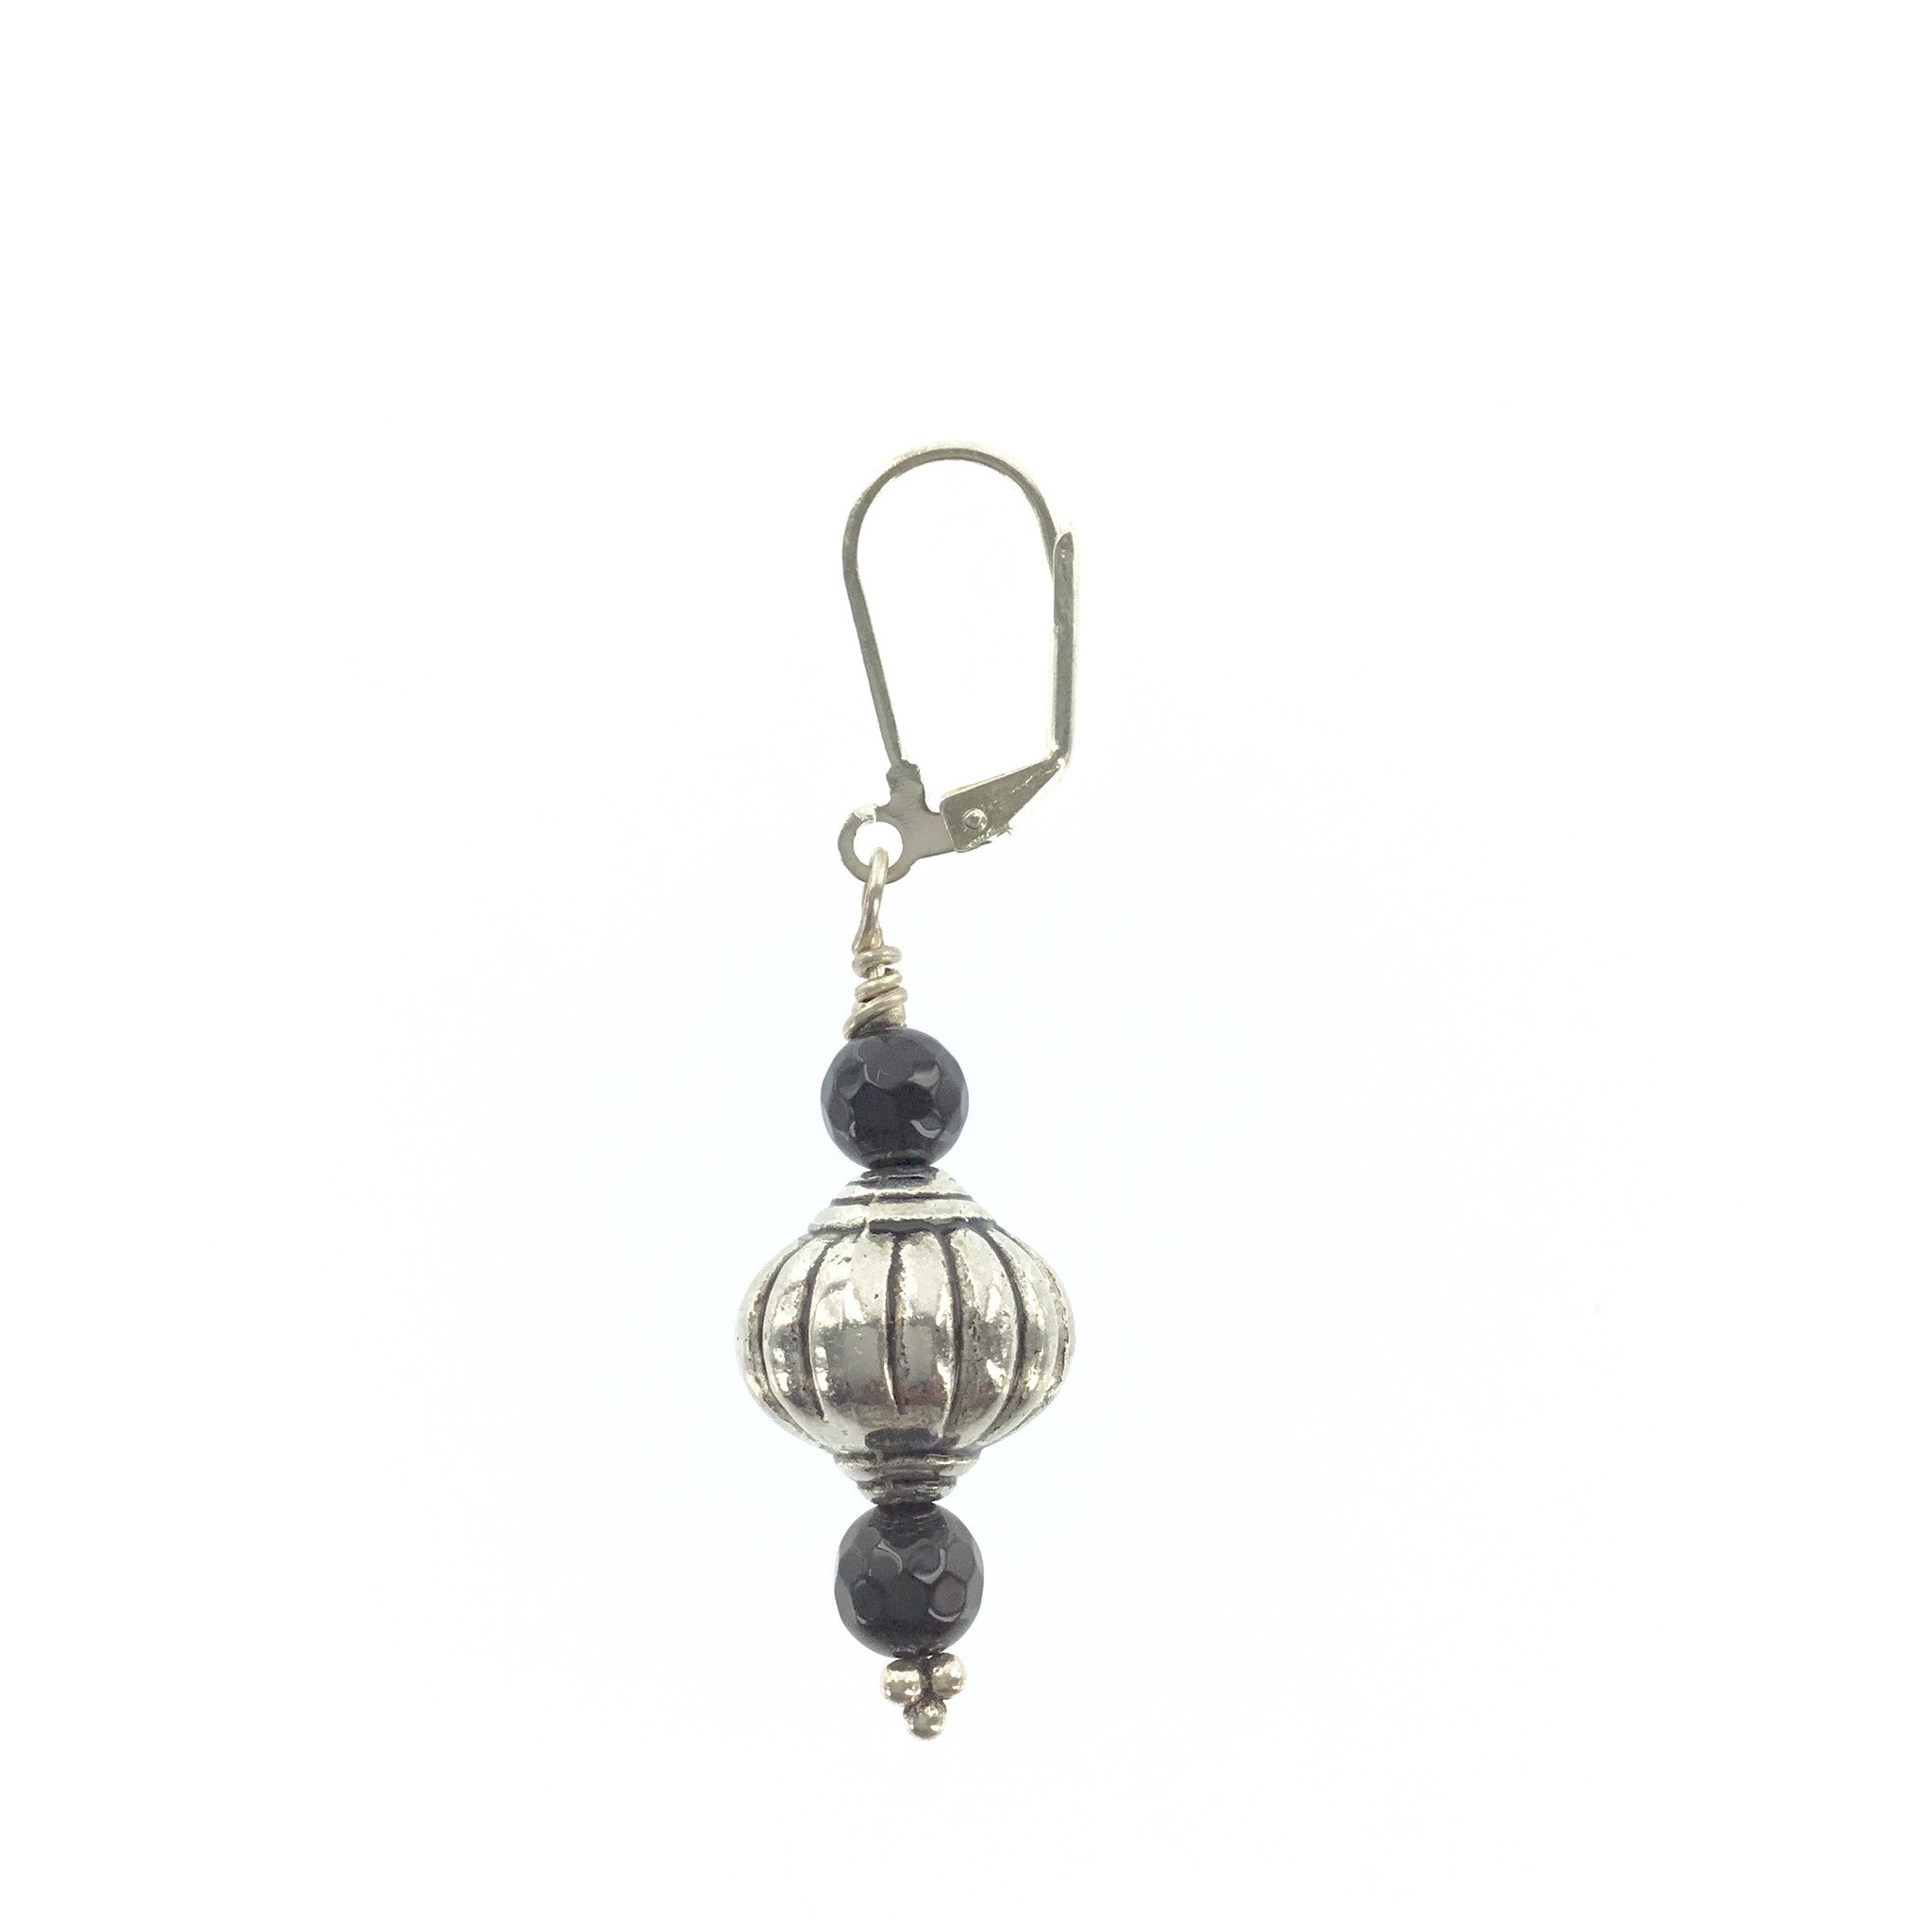 Antique Silver and Black Onyx Drop Earring - Real Chic Boutique  - 1